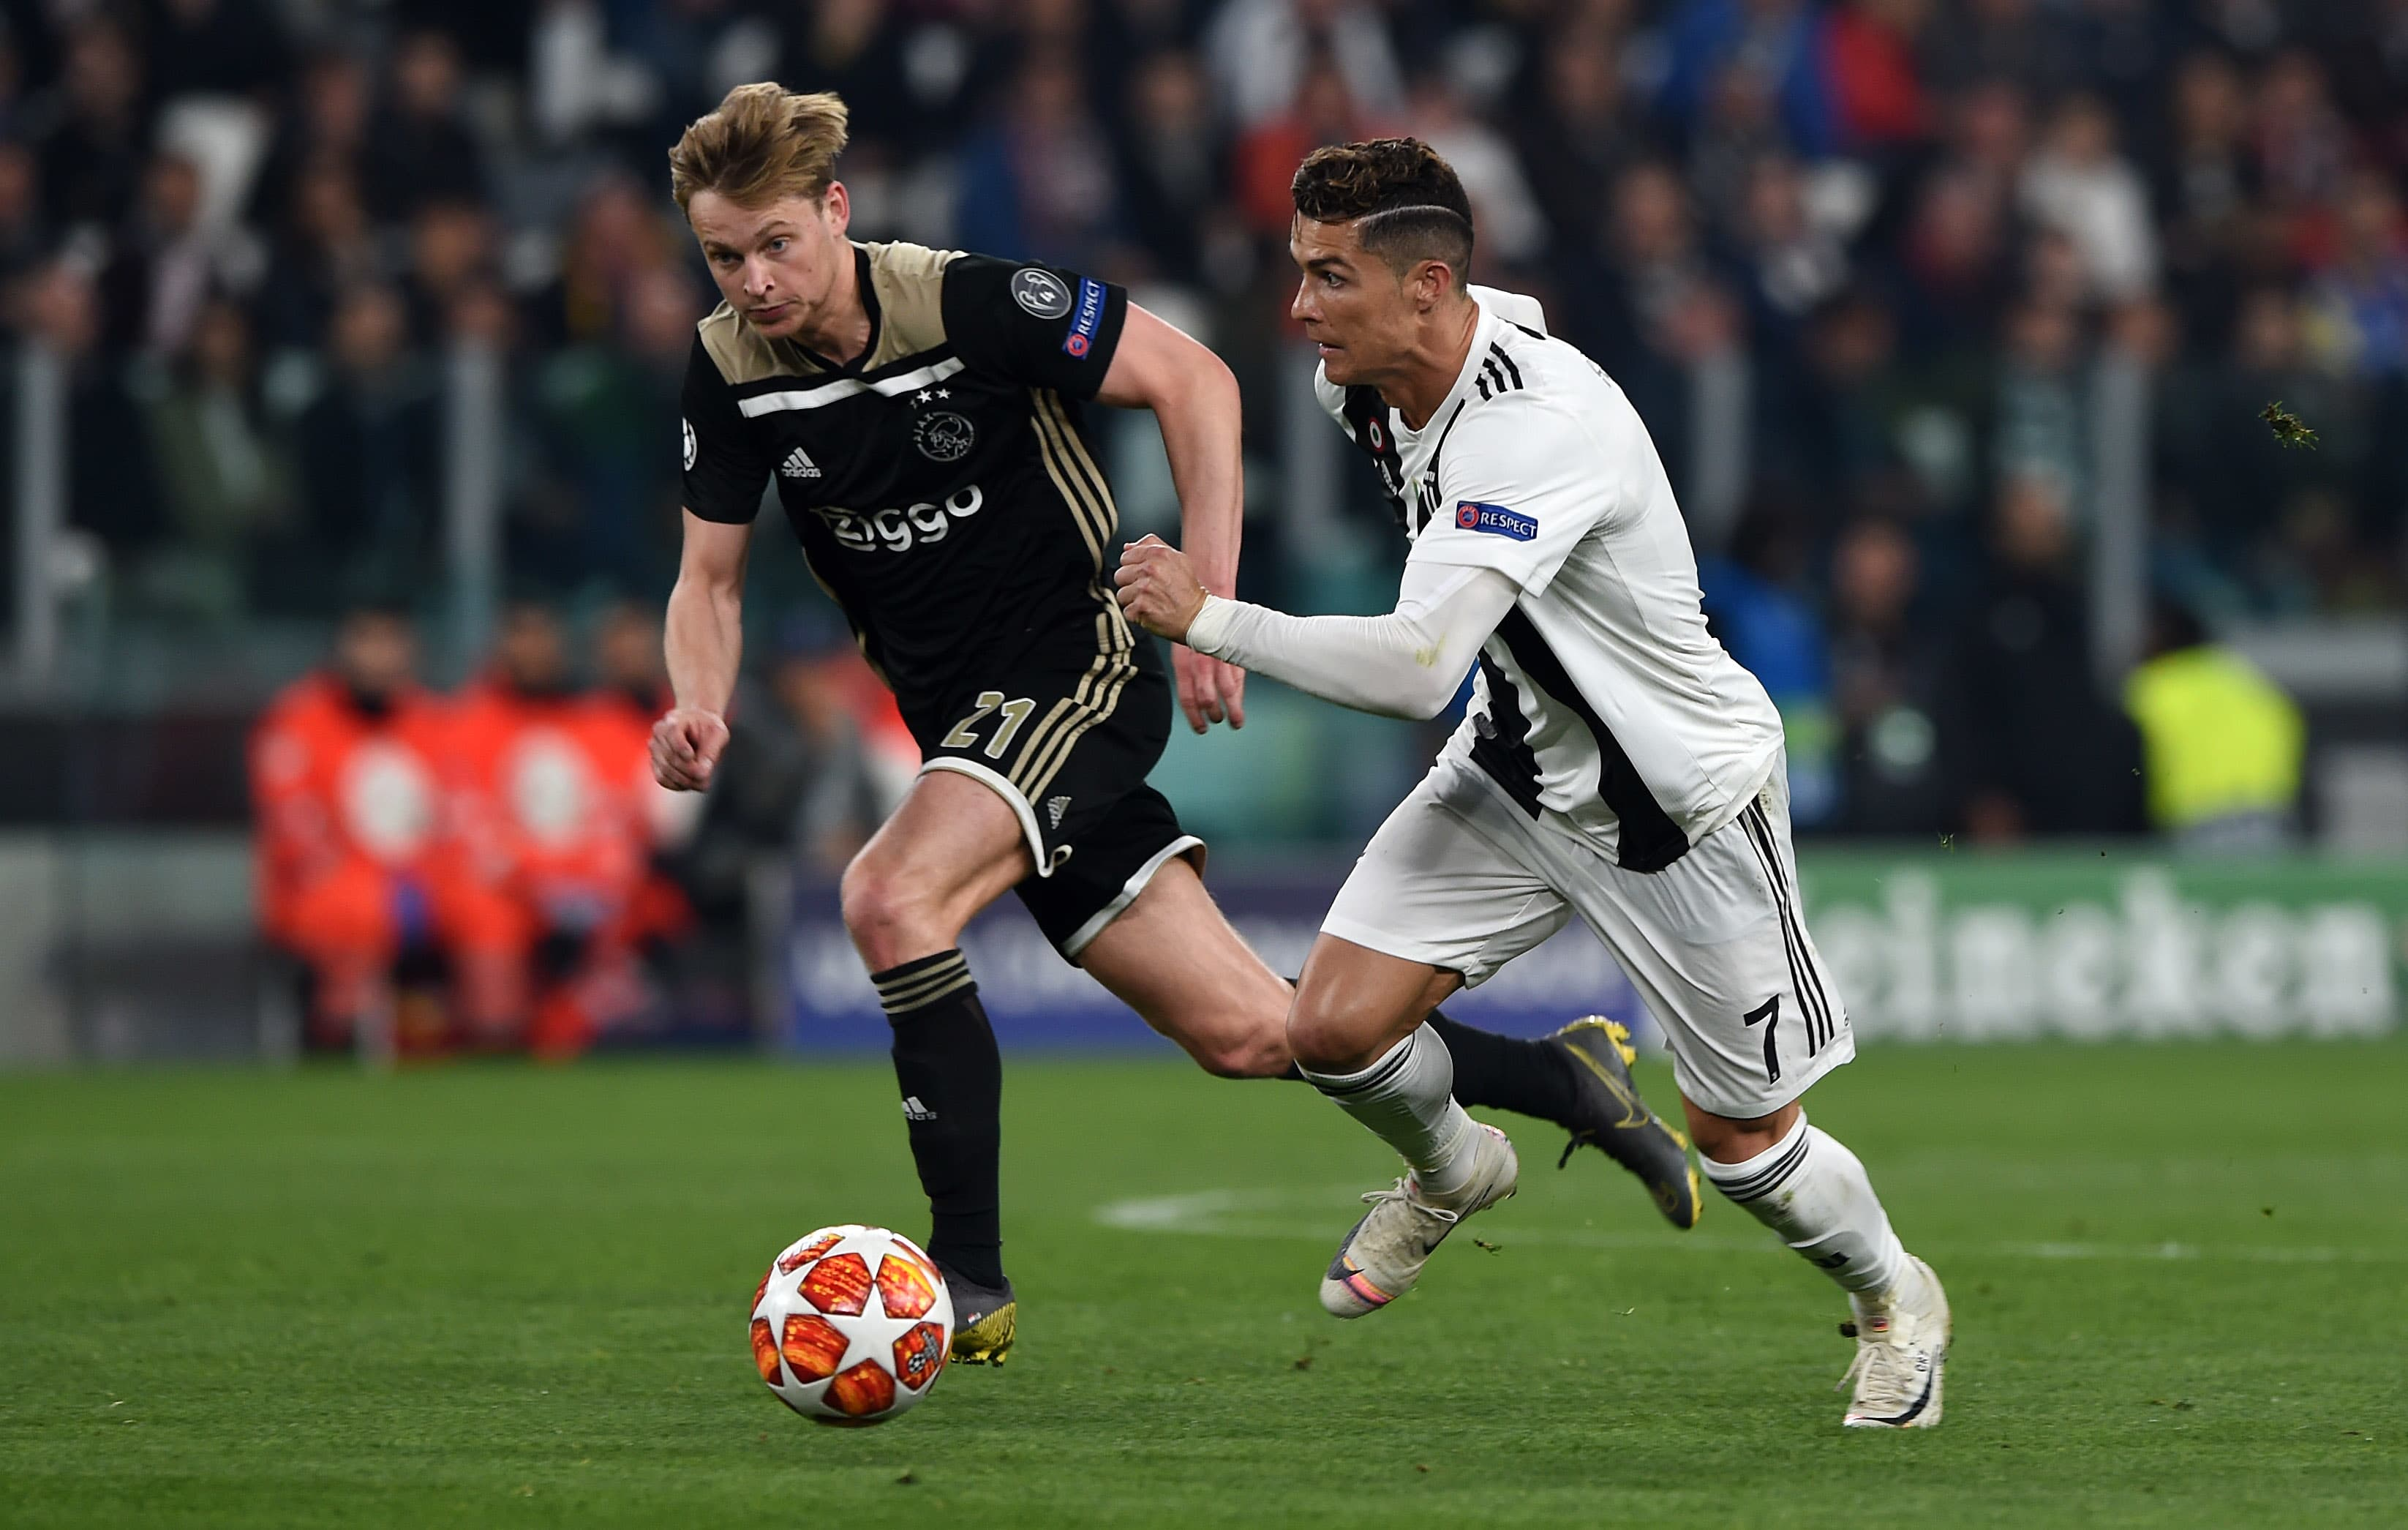 ViacomCBS reaches deal to stream UEFA Champions League matches 57